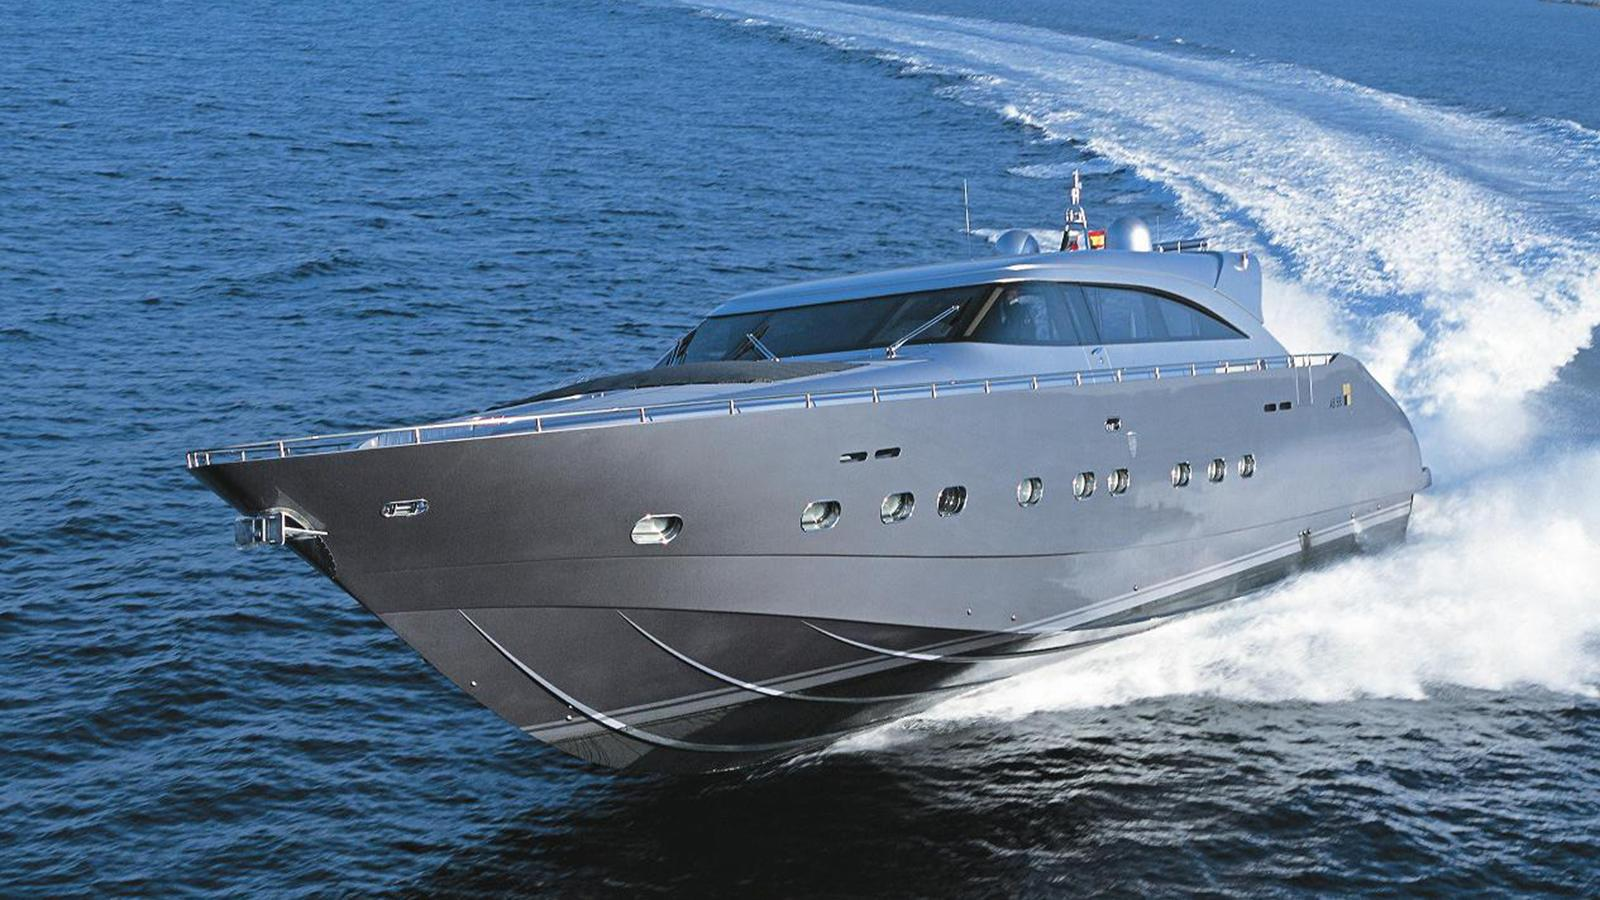 The superyacht Kereon by AB Yachts